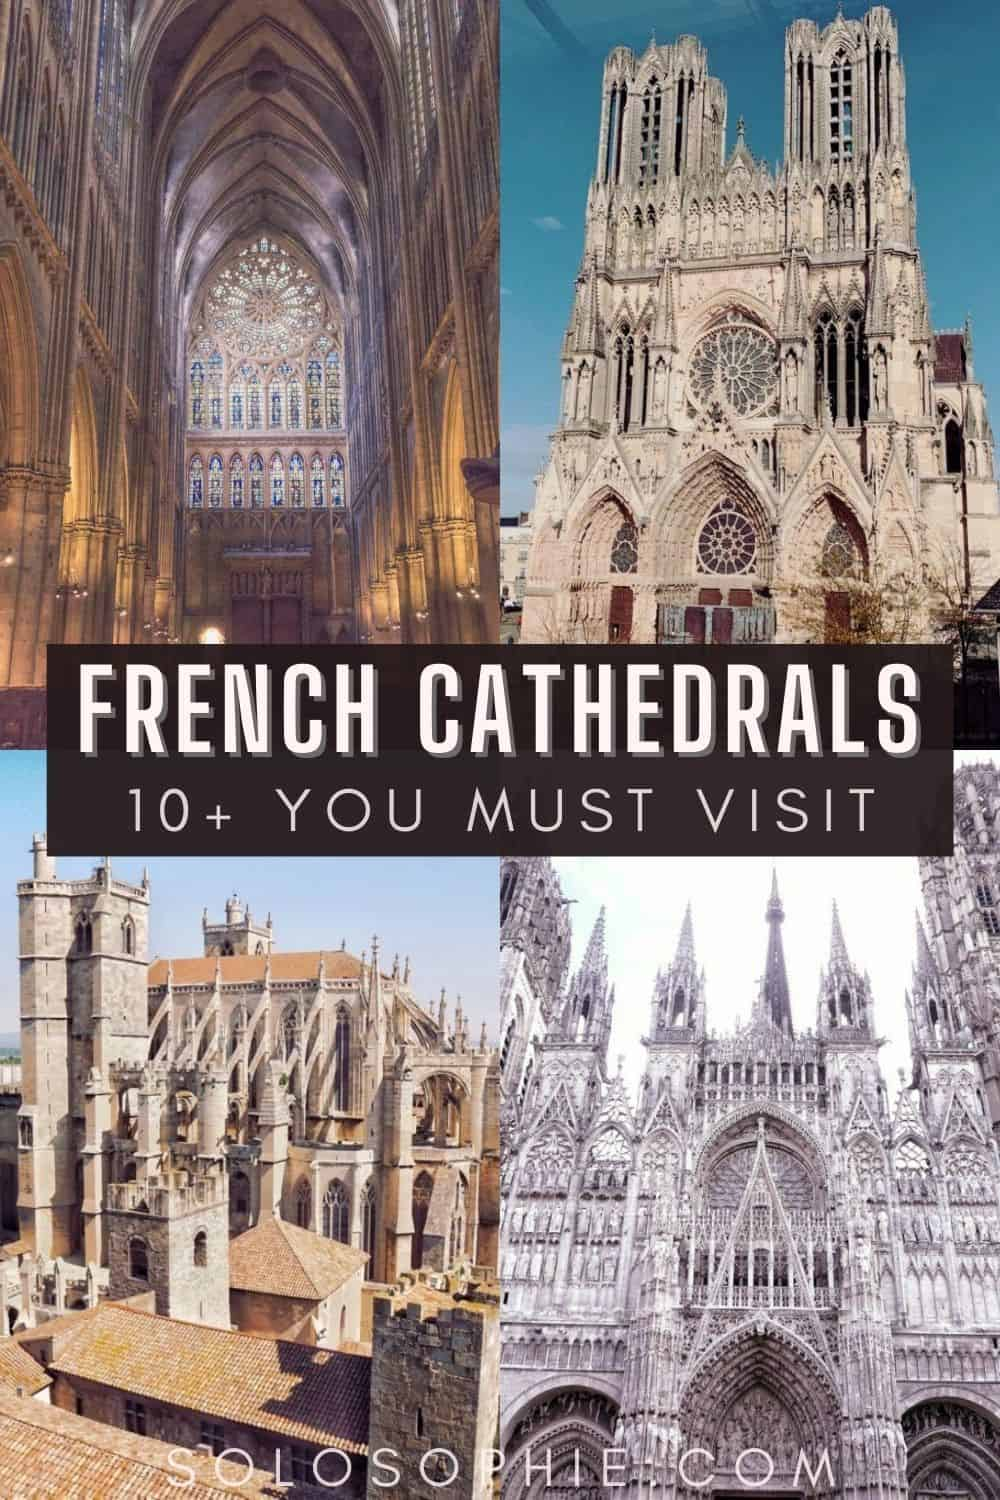 French Cathedrals/ 15 Incredible Cathedrals in France: Gothic, Renaissance & Romanesque Buildings